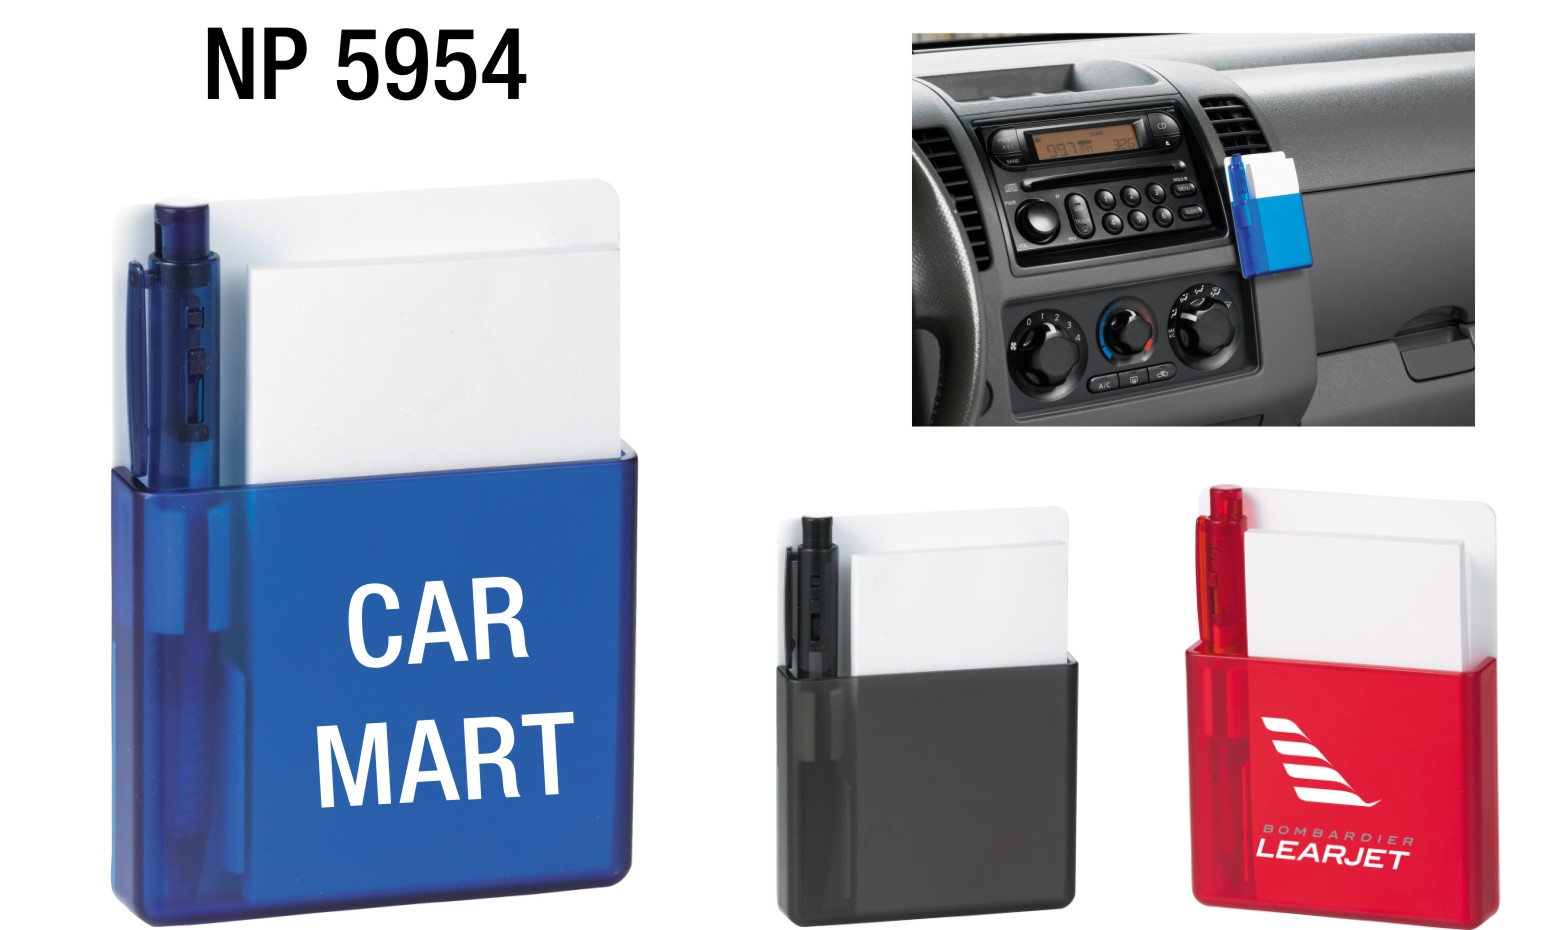 NP5954: Auto Note Holder